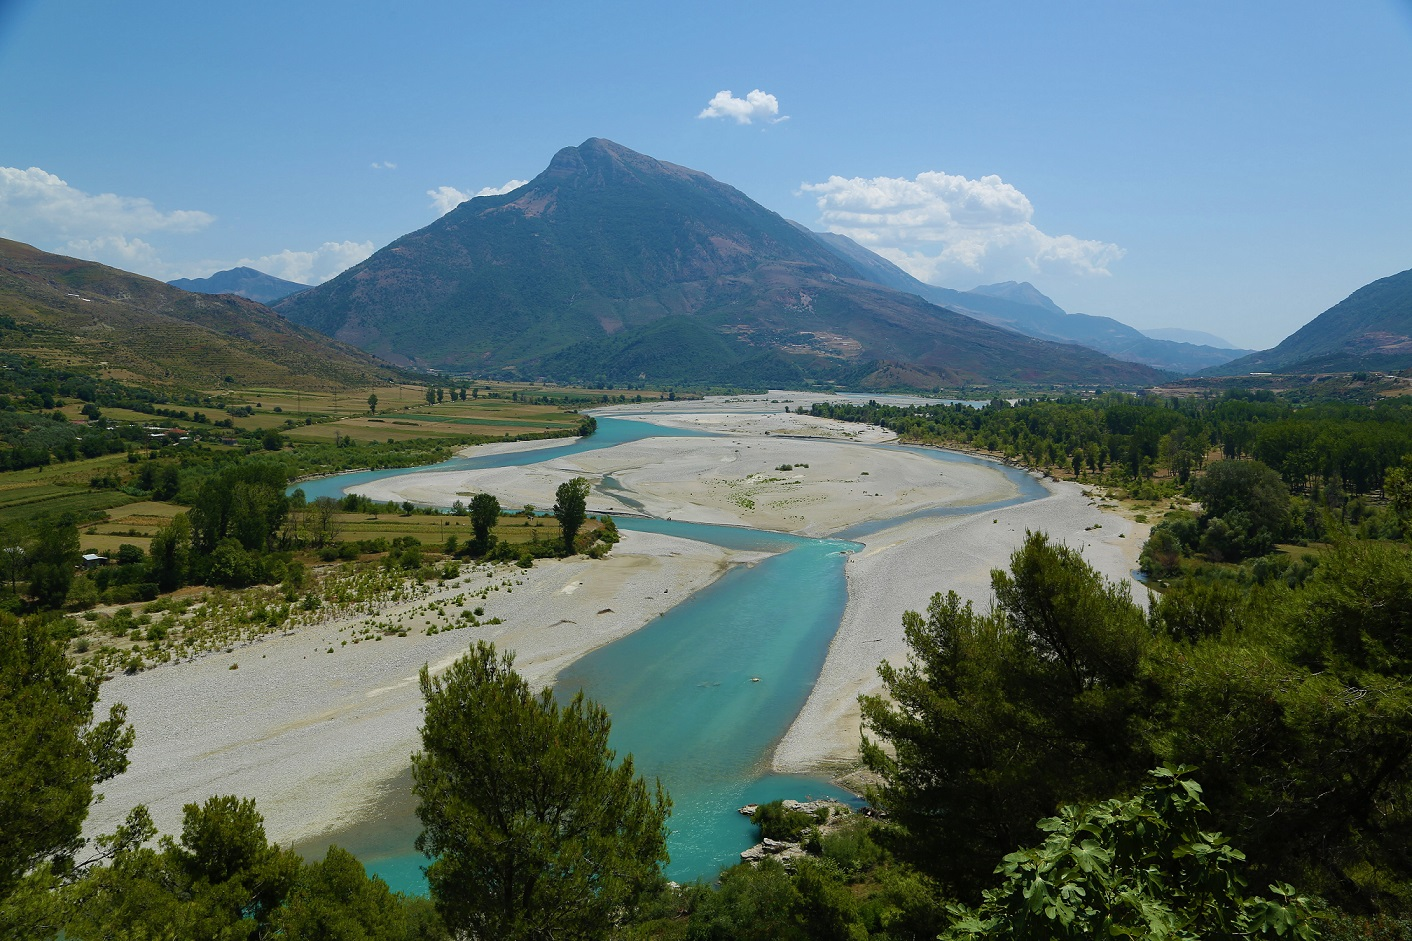 The Vjosa river. The EU calls for its protection, but the Albanian government wants to have hydropower plants constructed © Christian Baumgartner/Nationalpark Donau-Auen